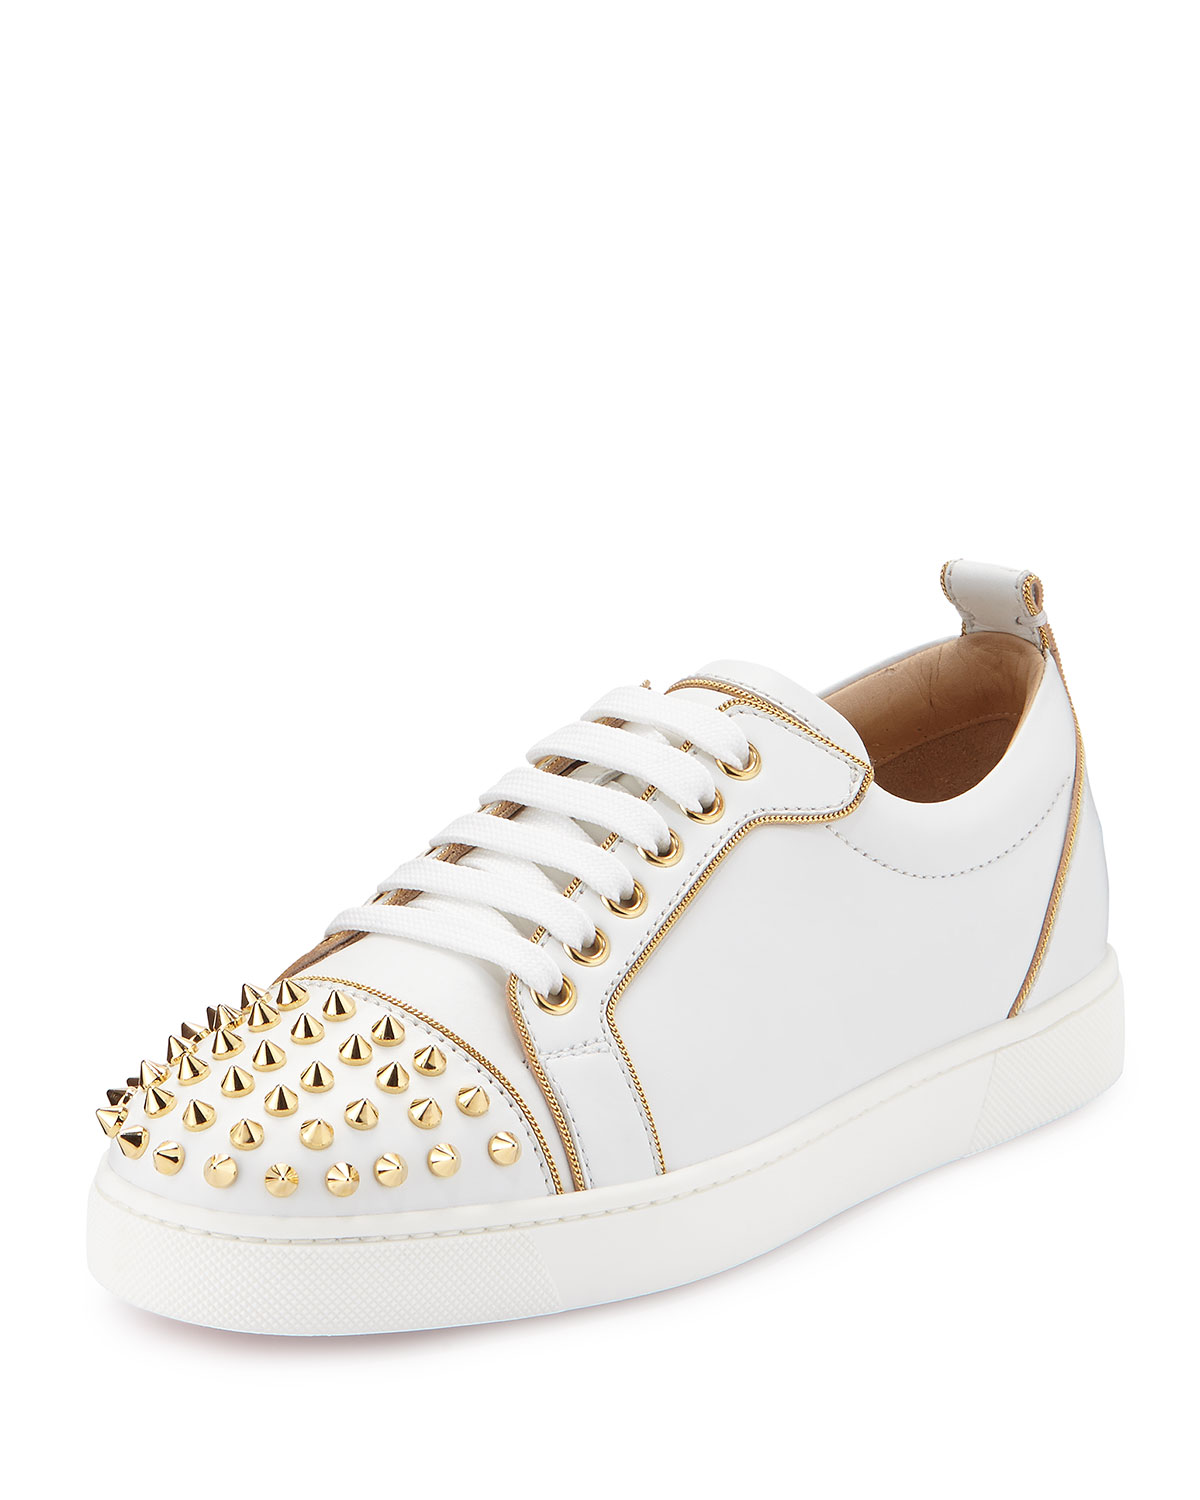 0ef3bf4fa0d Rush Spiked Leather Low-Top Sneaker, White/Gold